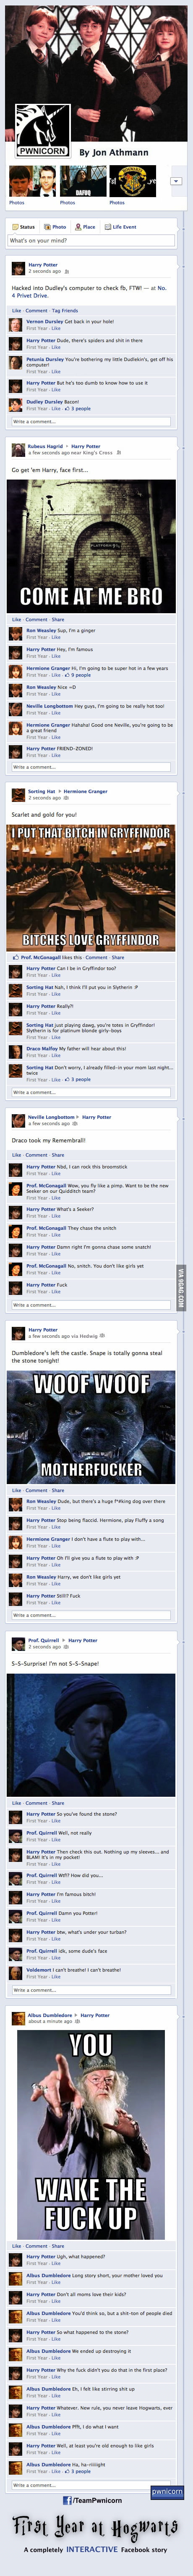 Harry Potter on Facebook